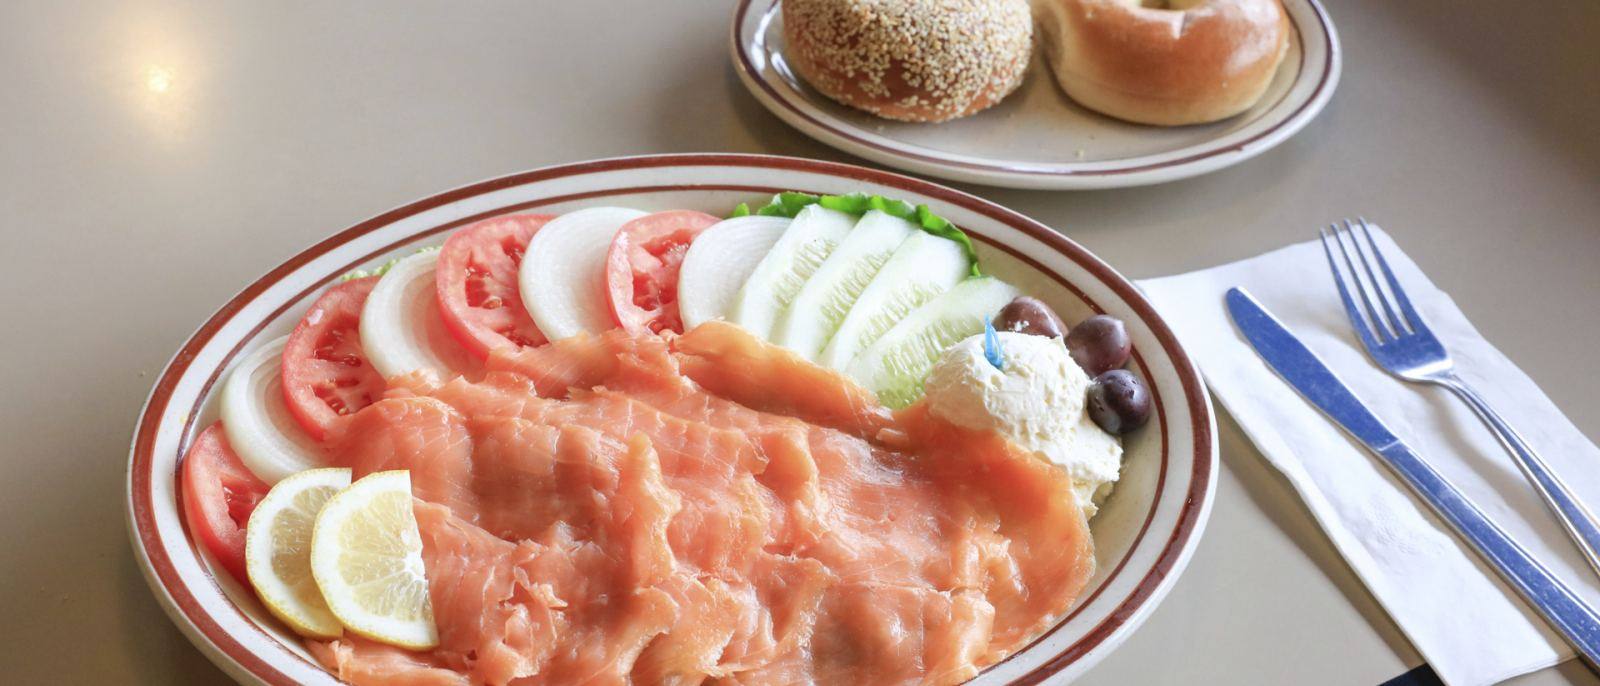 Lox Plate at Art's Deli